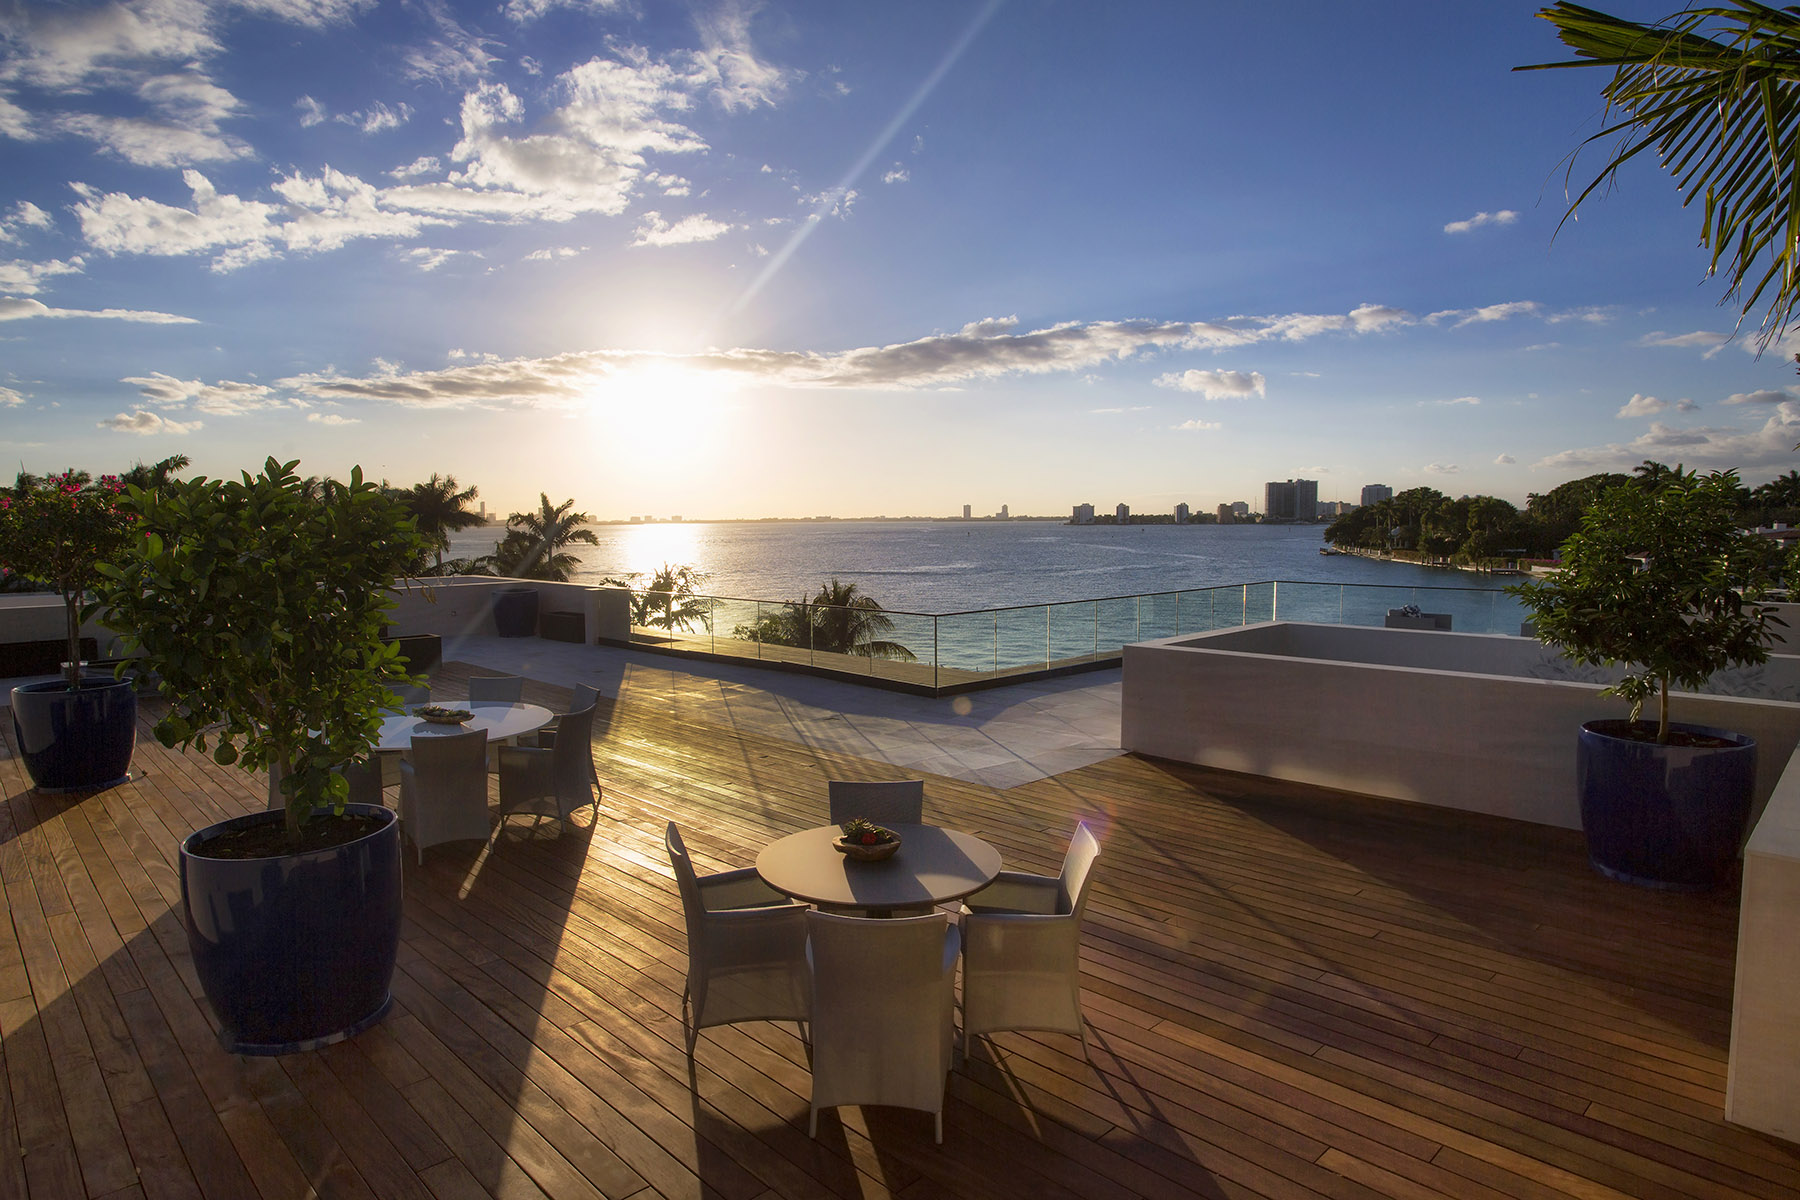 6440 North Bay Road, Miami Beach, an aerial view from the rooftop deck overlooking the water.